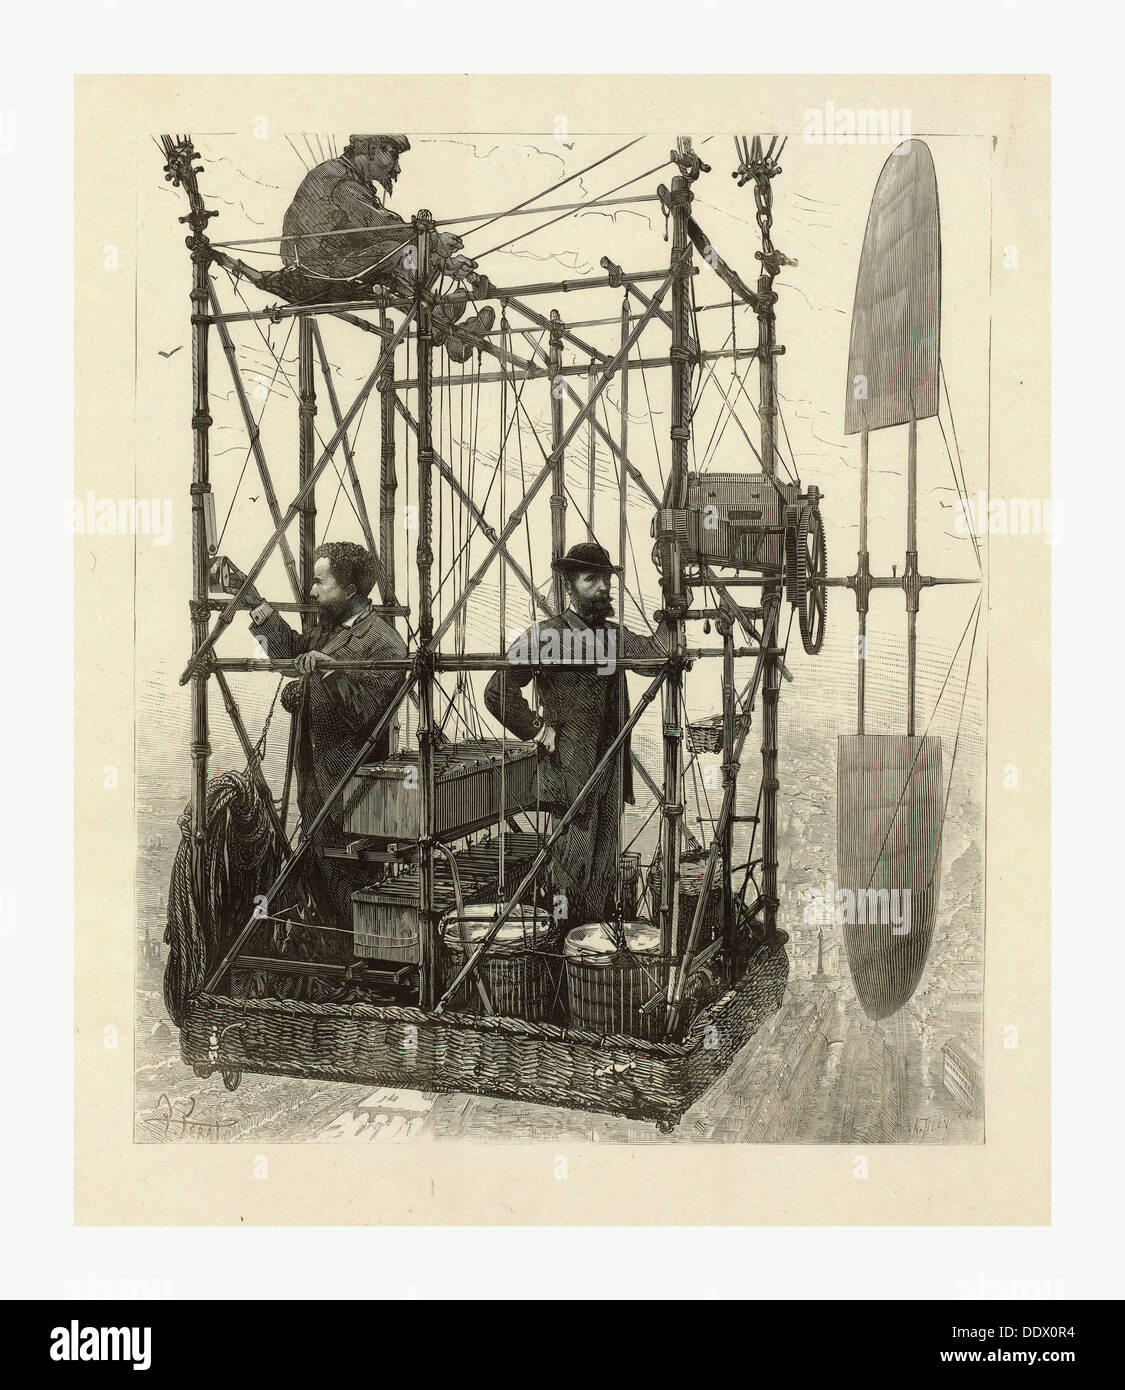 Albert Tissandier (left), Gaston Tissandier (right), and an unidentified man in the basket of their airship - Stock Image